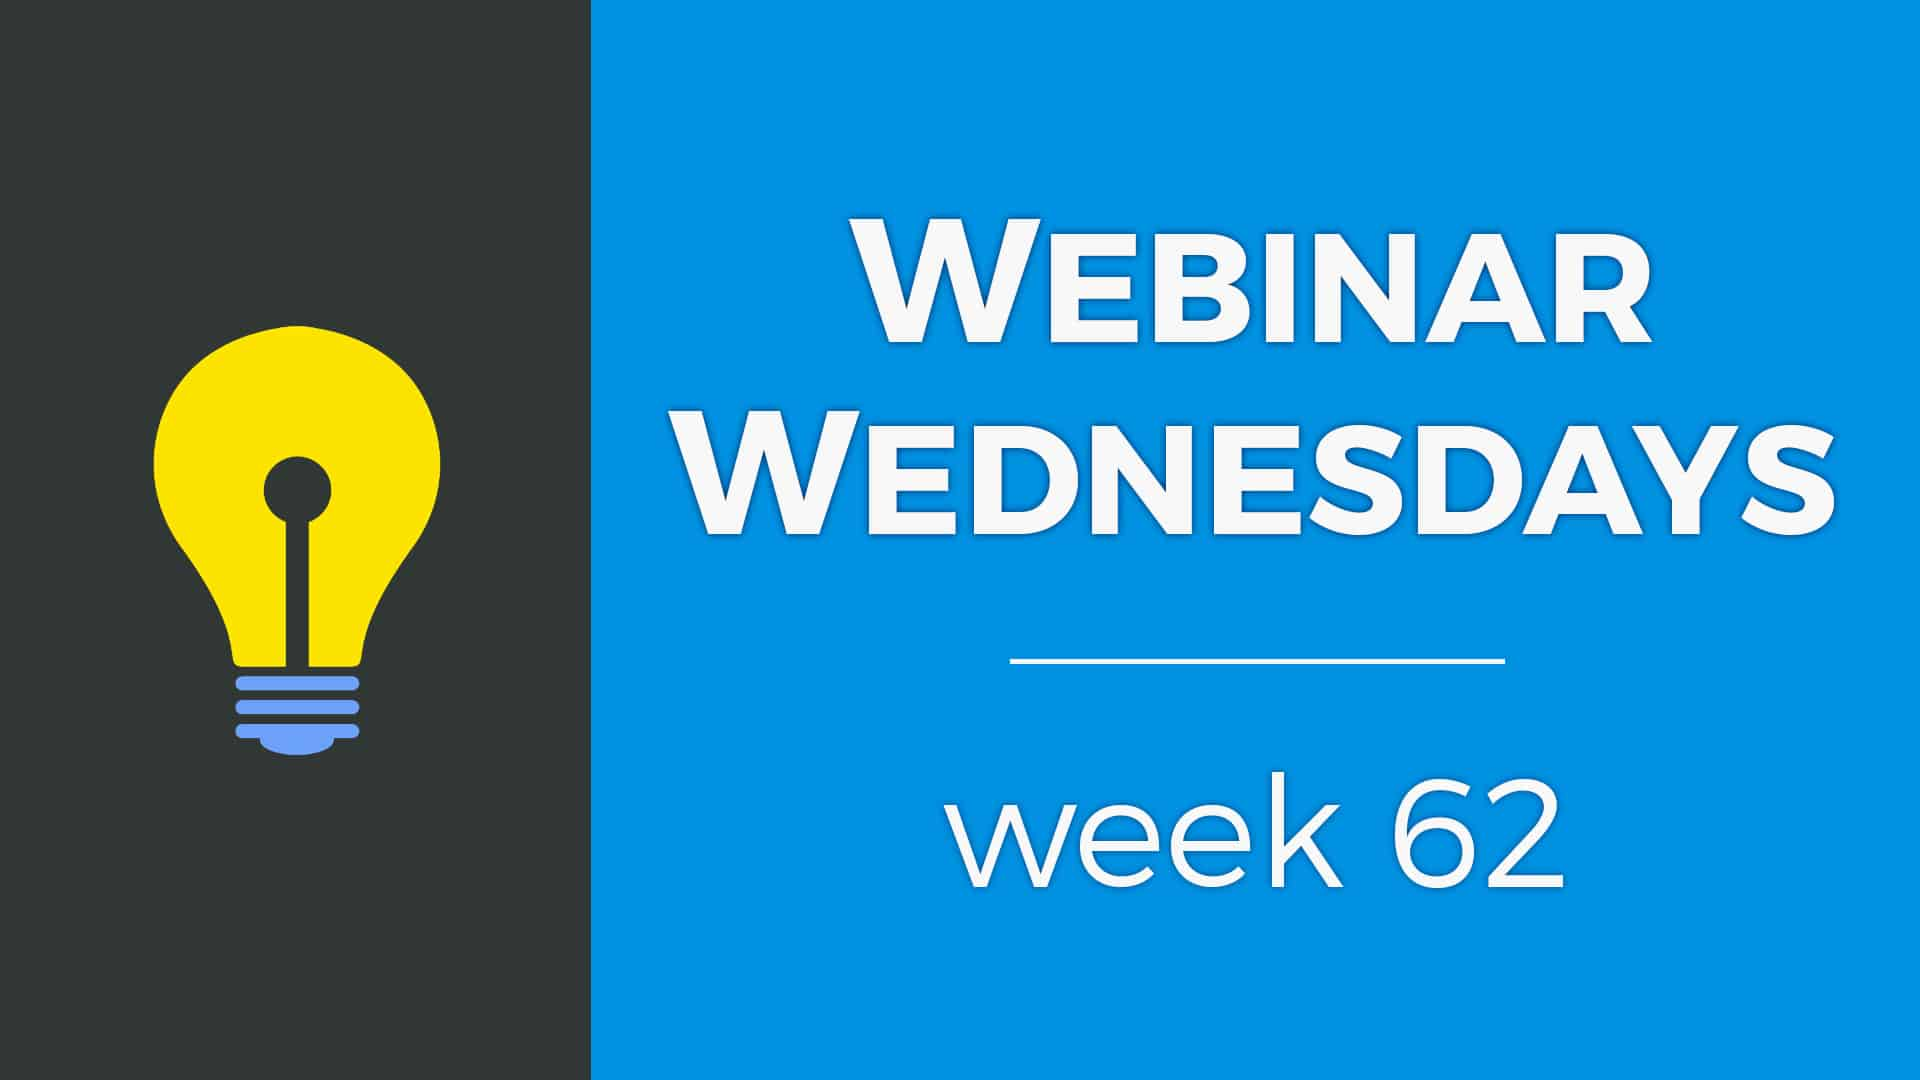 Webinar Wednesday 62 <small>– April 10, 2019</small>